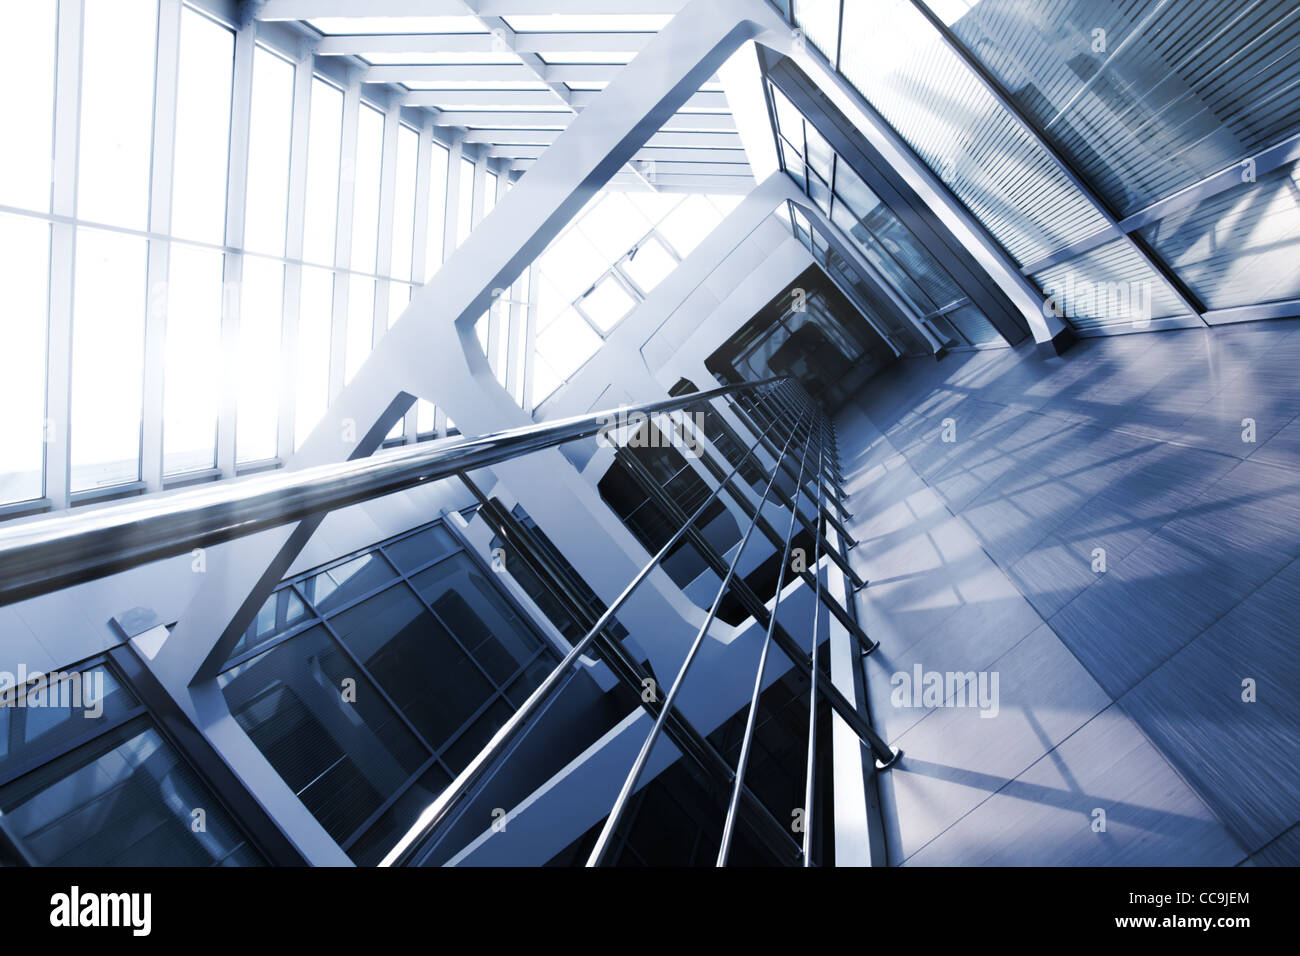 Office building interior with a glass roof. Blue tint. Tilt view. - Stock Image